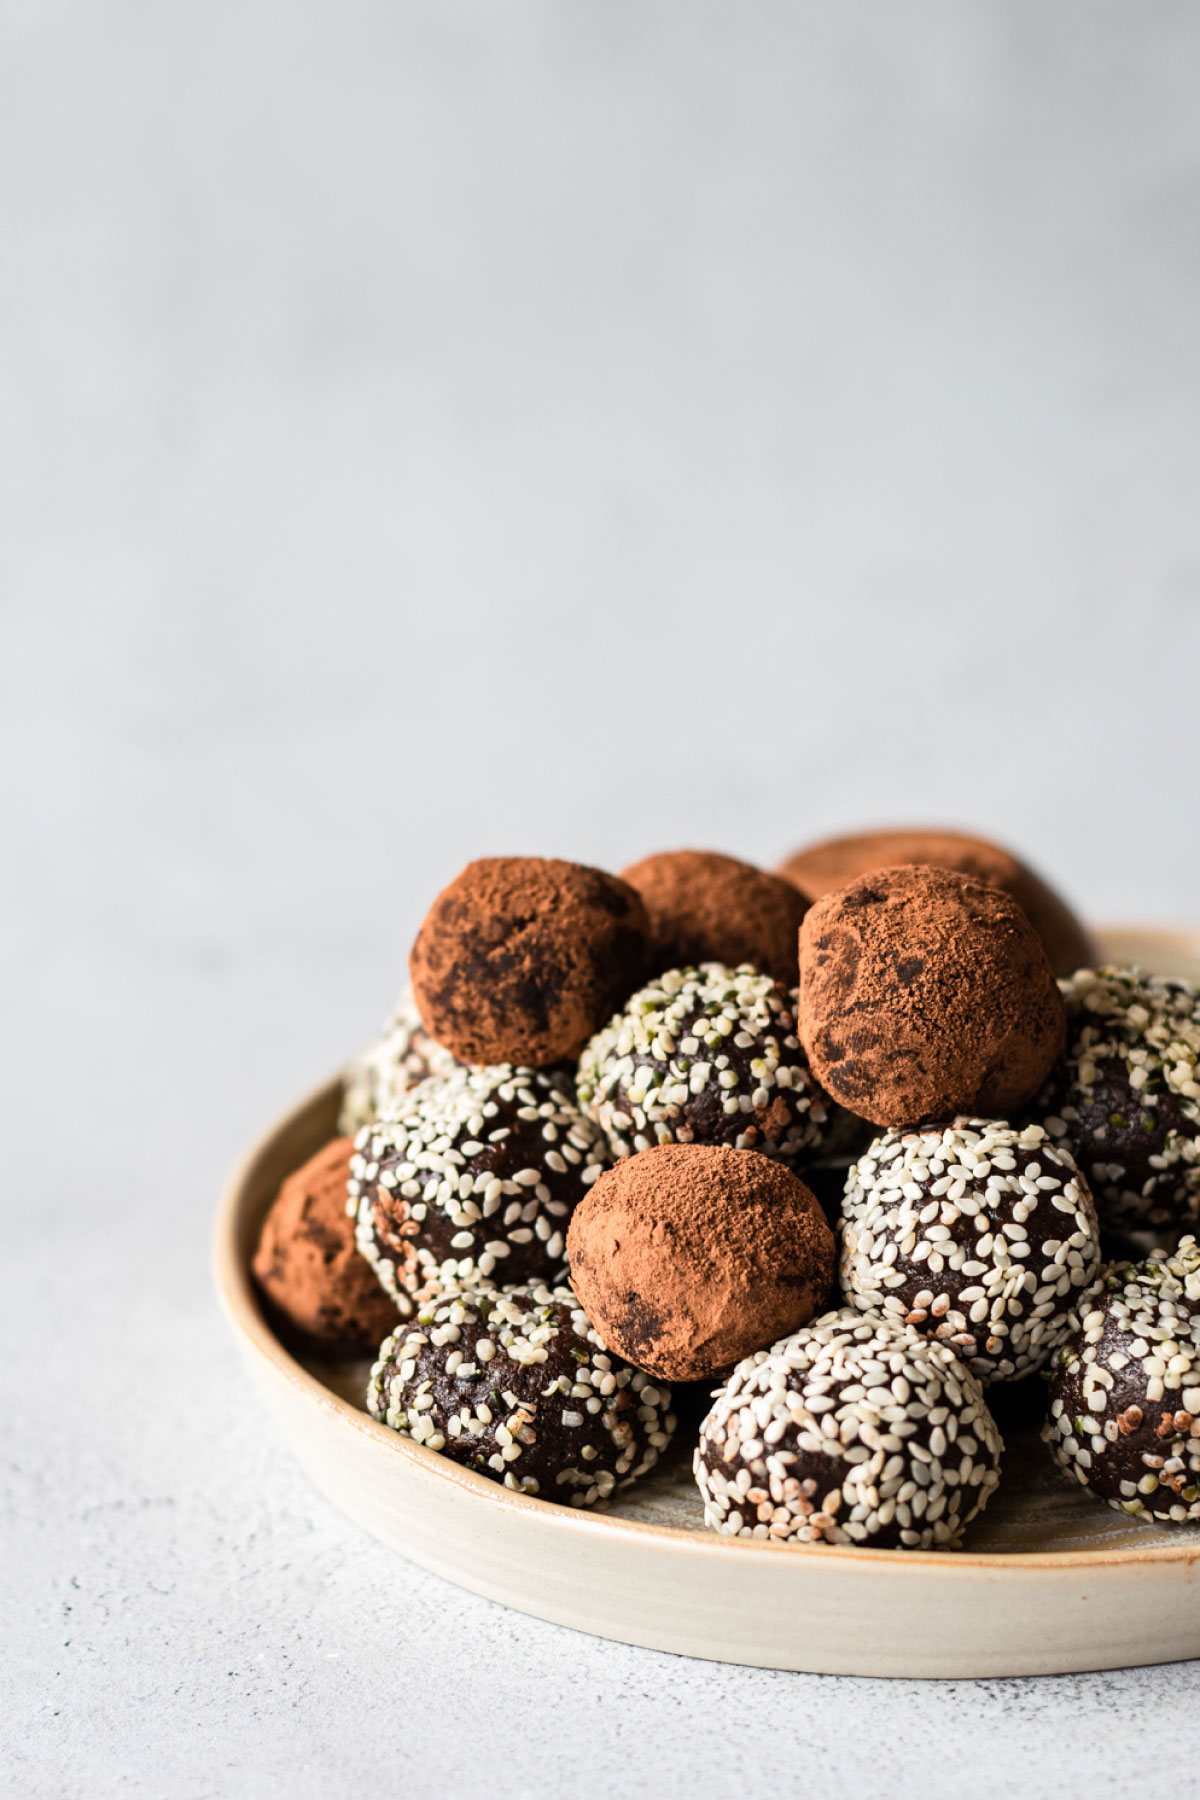 Chocolate Tahini Bliss Balls | The Crooked Carrot